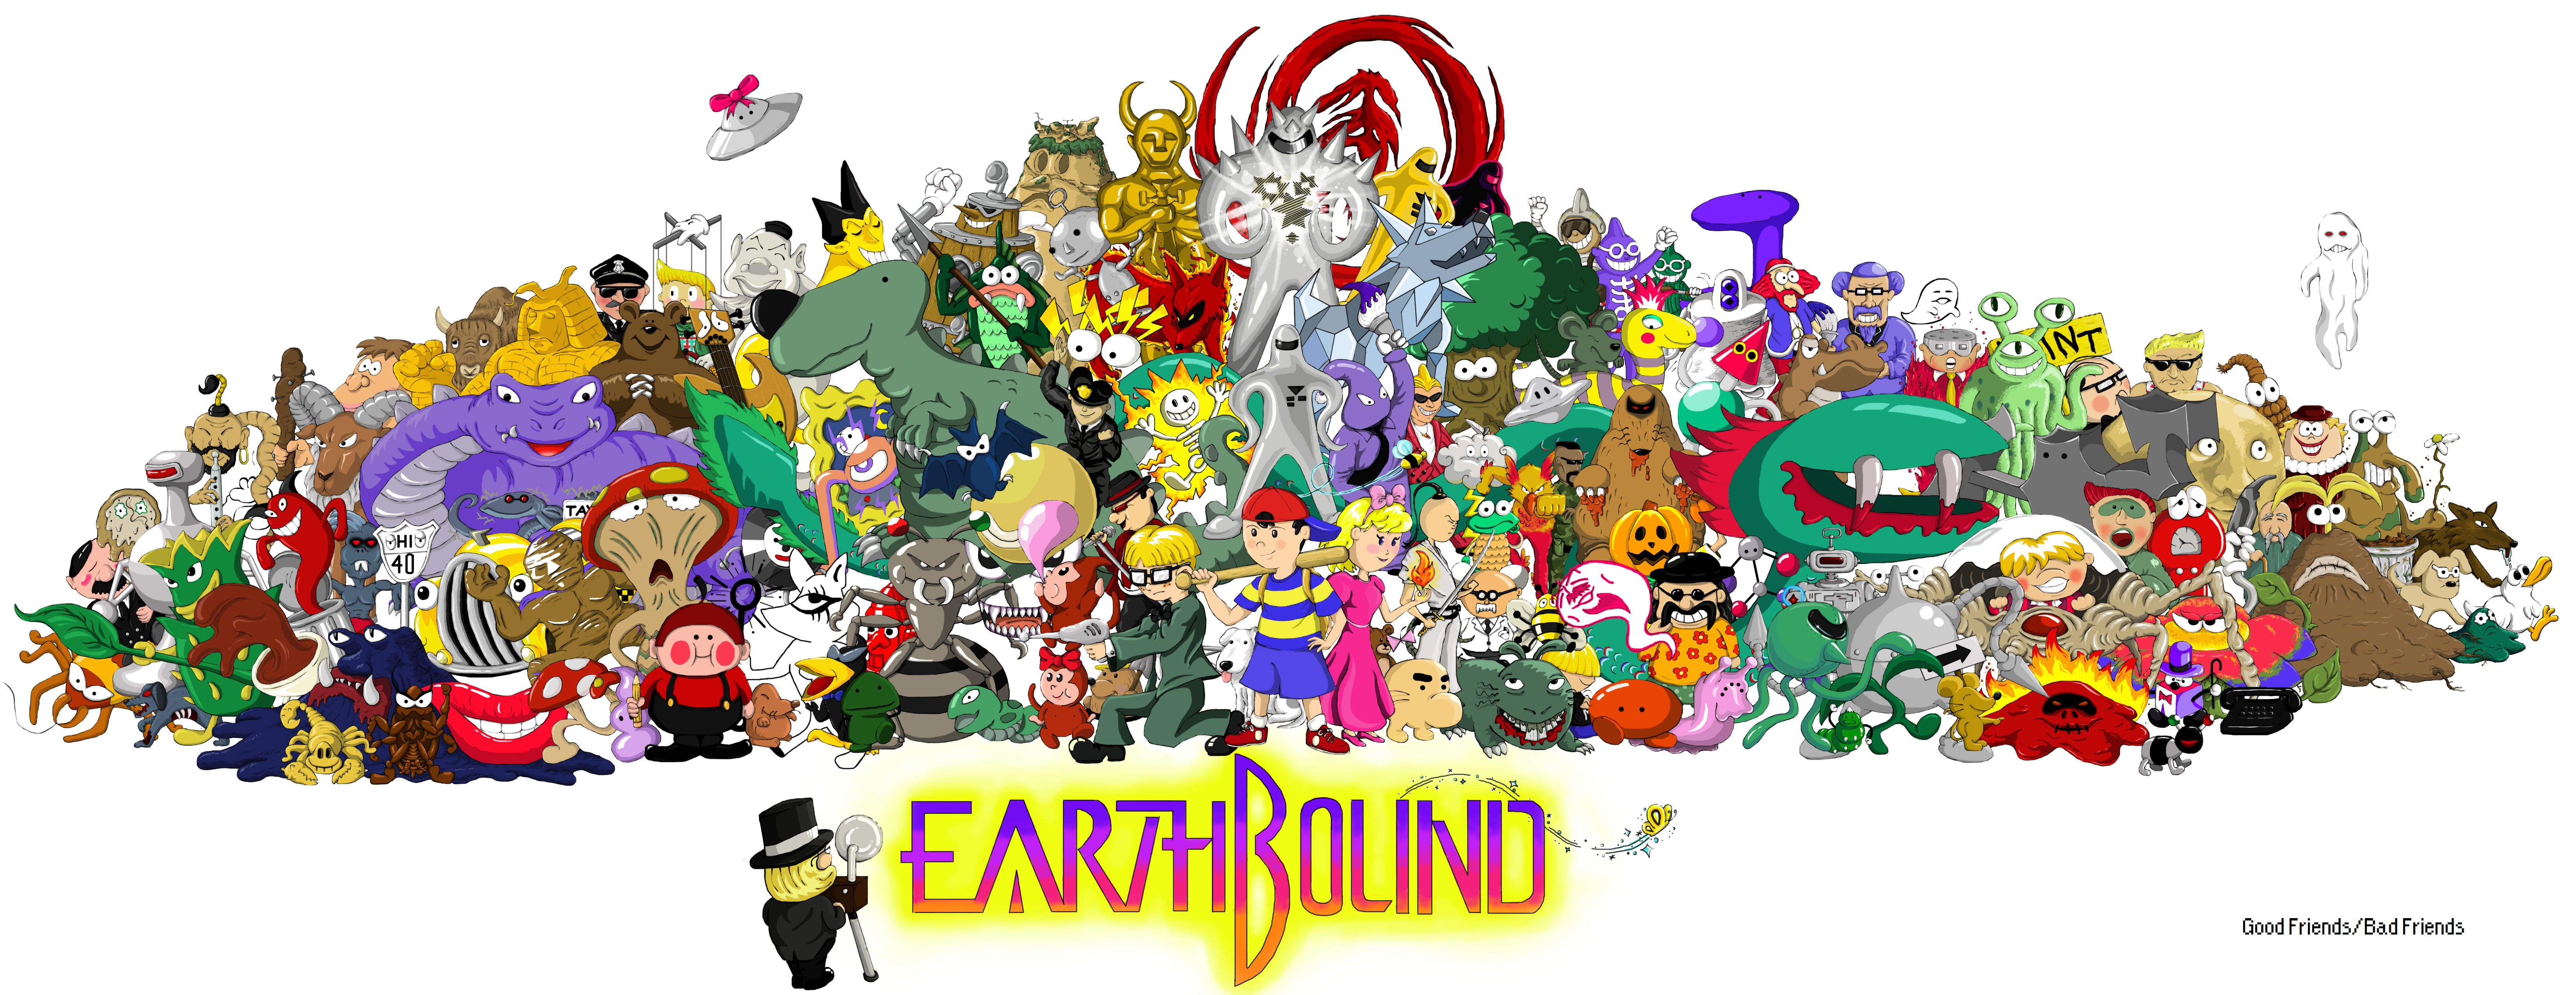 EarthBound. Played this game for the Super Nintendo